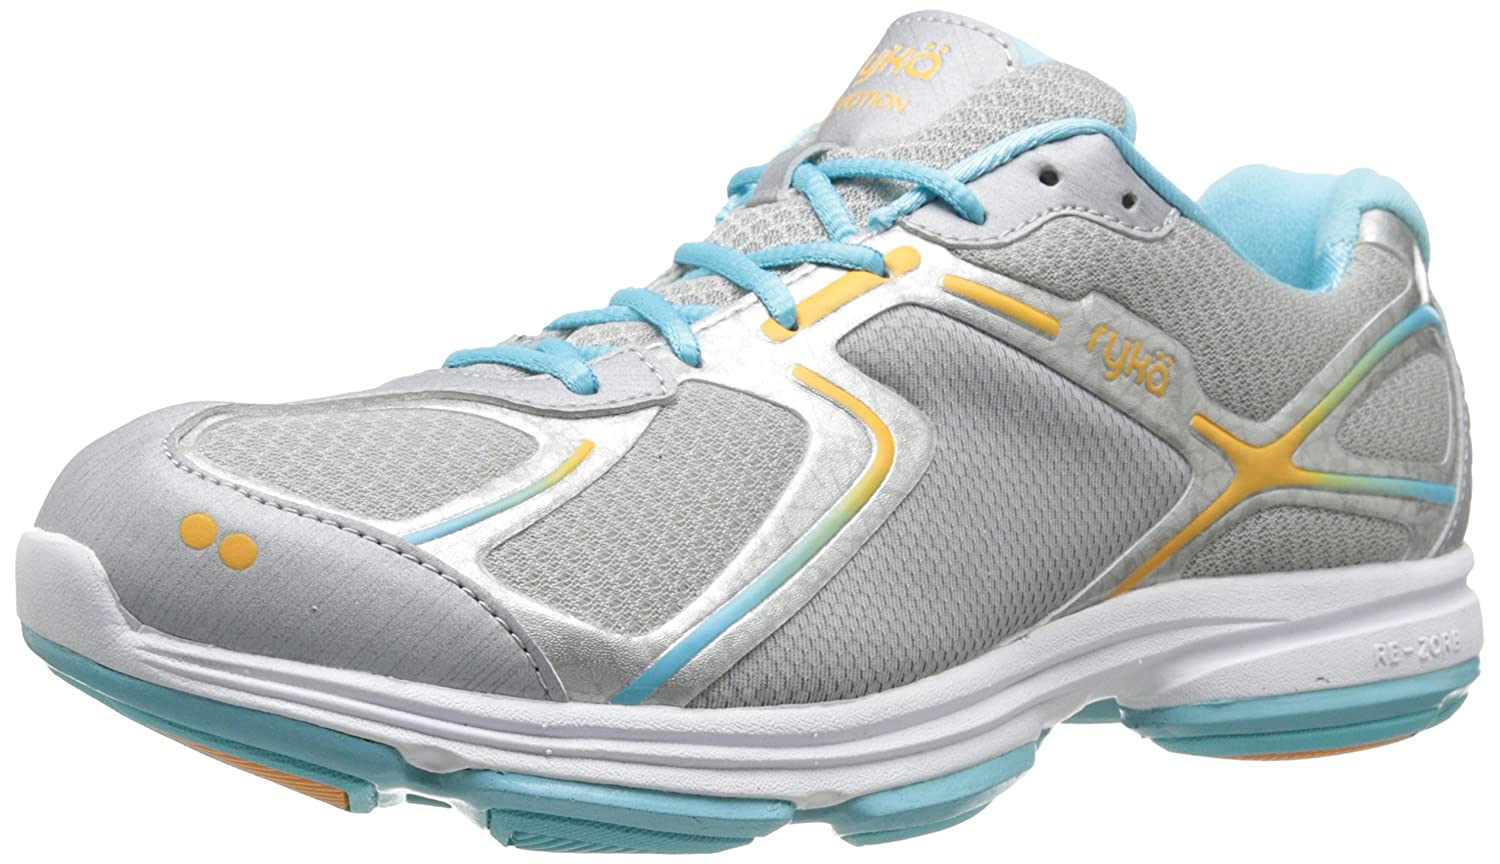 Ryka Women's Devotion Walking Shoe B00I9TUW66 11 W US|Chrome Silver/Nirvana Blue/Tangerine Orange